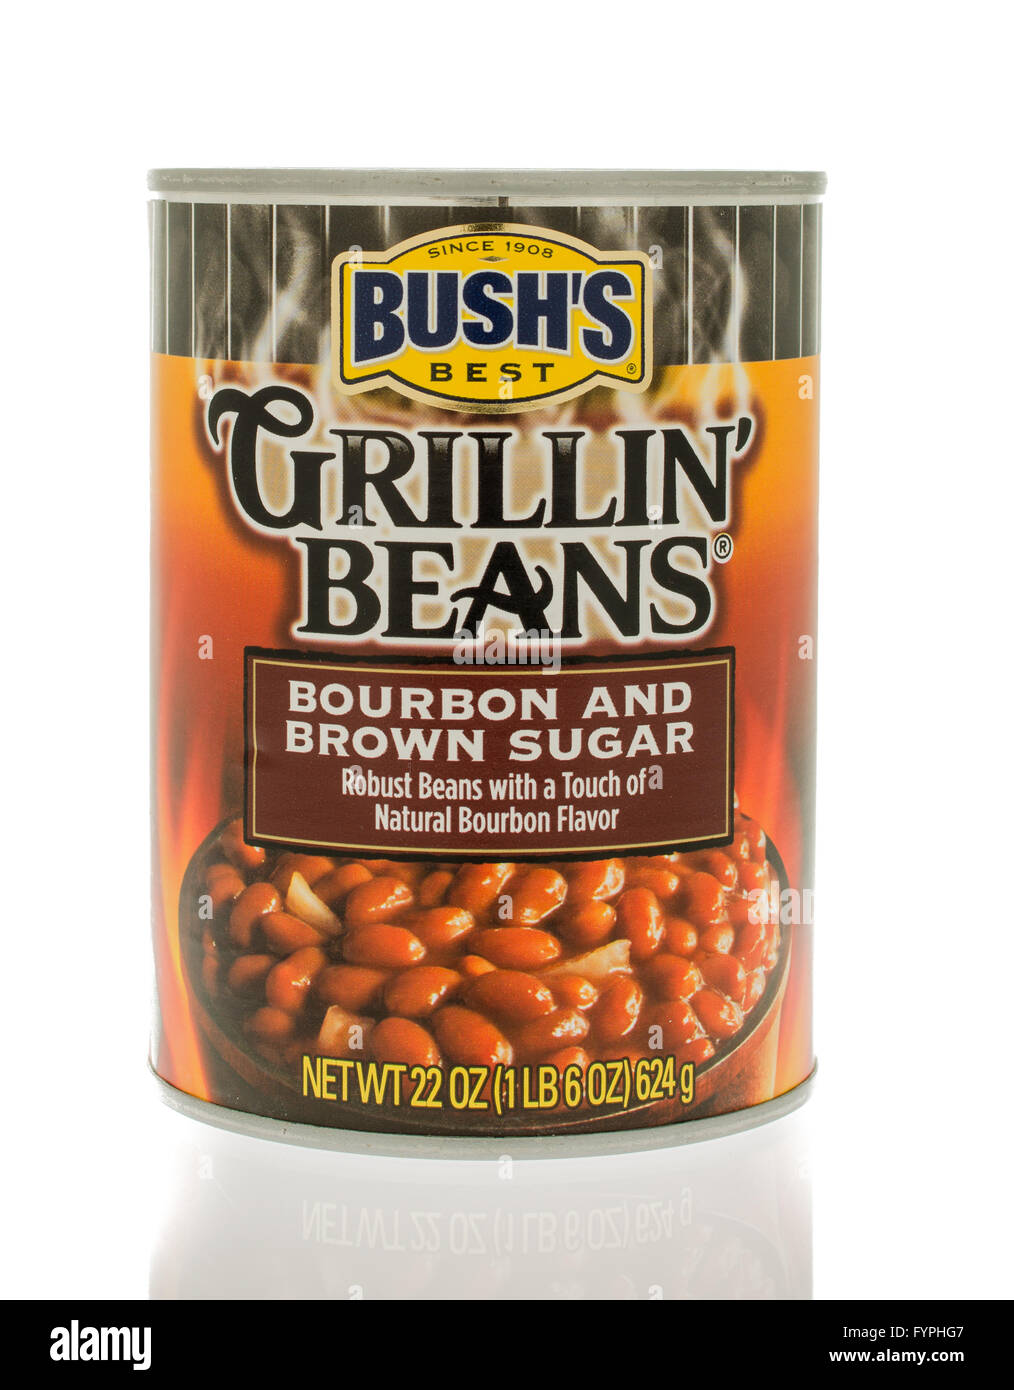 Winneconne, WI - 18 Nov 2015:  A can of Bush's grillin' beans in bourbon and brown sugar flavor. - Stock Image